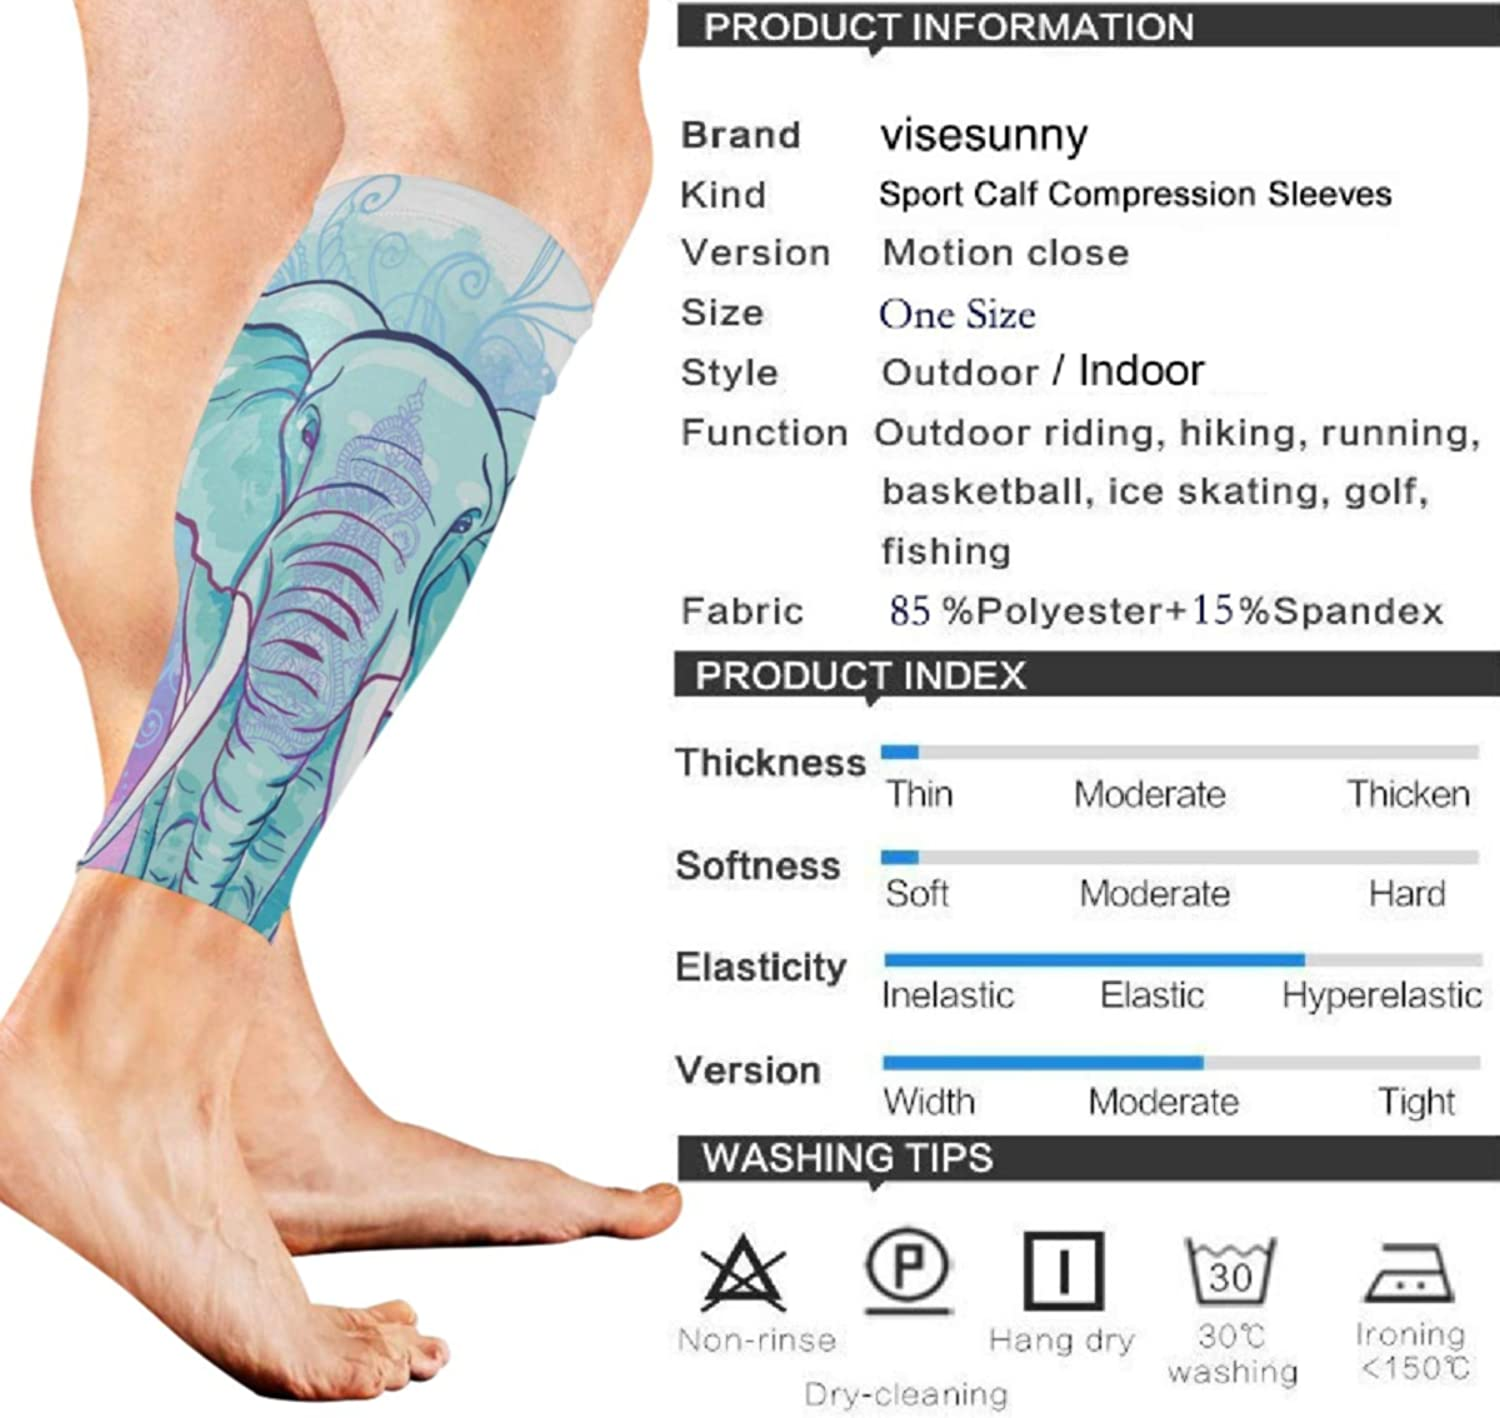 visesunny Colorful Indian Elephant Sports Calf Support Sleeves for Muscle Pain Relief, Improved Circulation Compression – Effective Support for Running, Jogging,Workout(1 Pair)